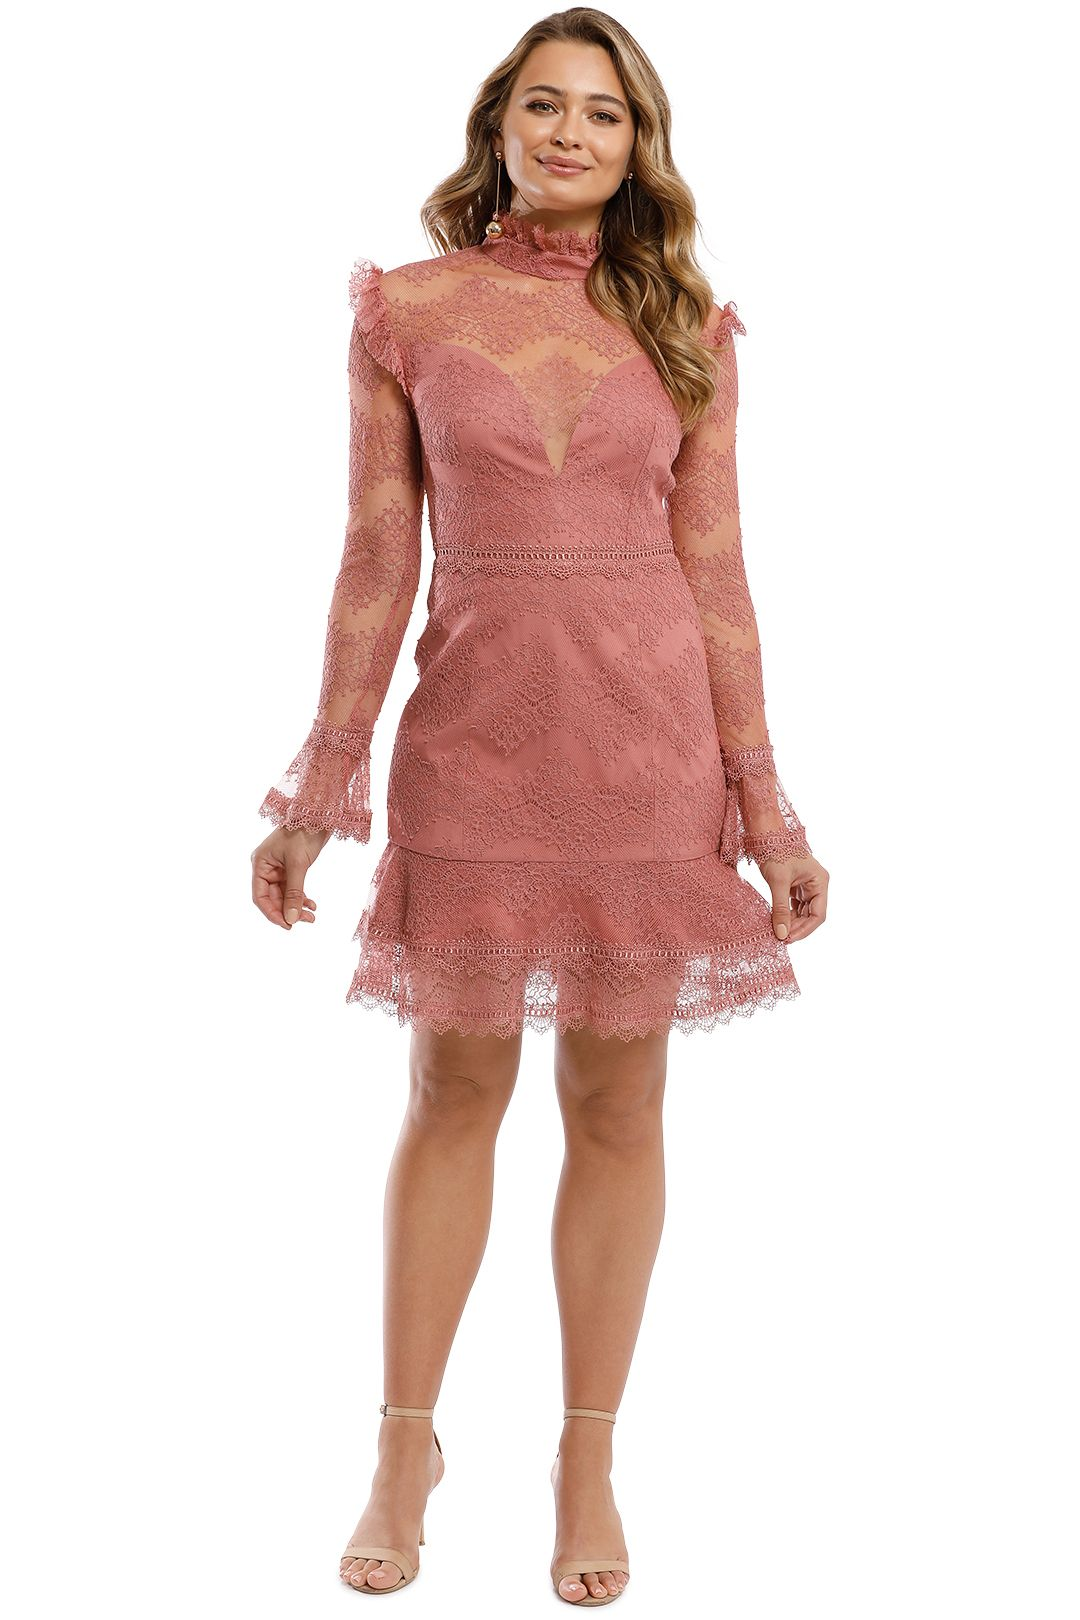 Nicholas - Thalia Lace Ruffle Mini Dress - Dusty Rose - Front